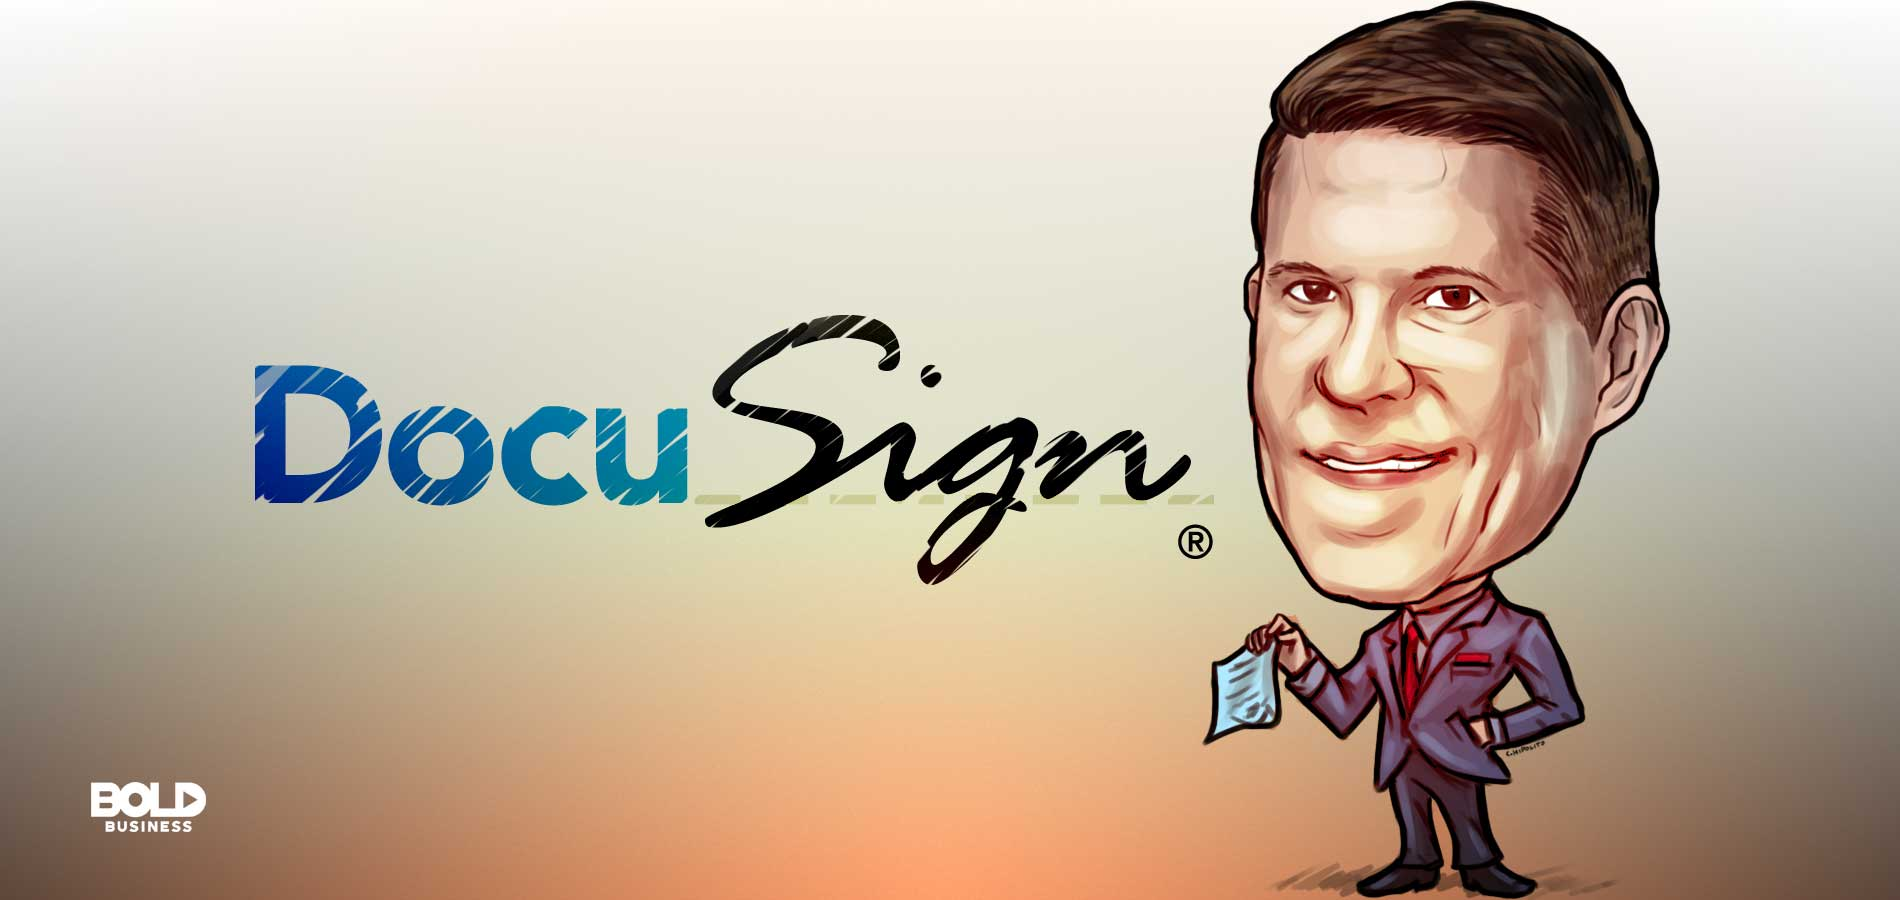 a caricature of Keith Krach, former DocuSign CEO, standing beside the logo of DocuSign